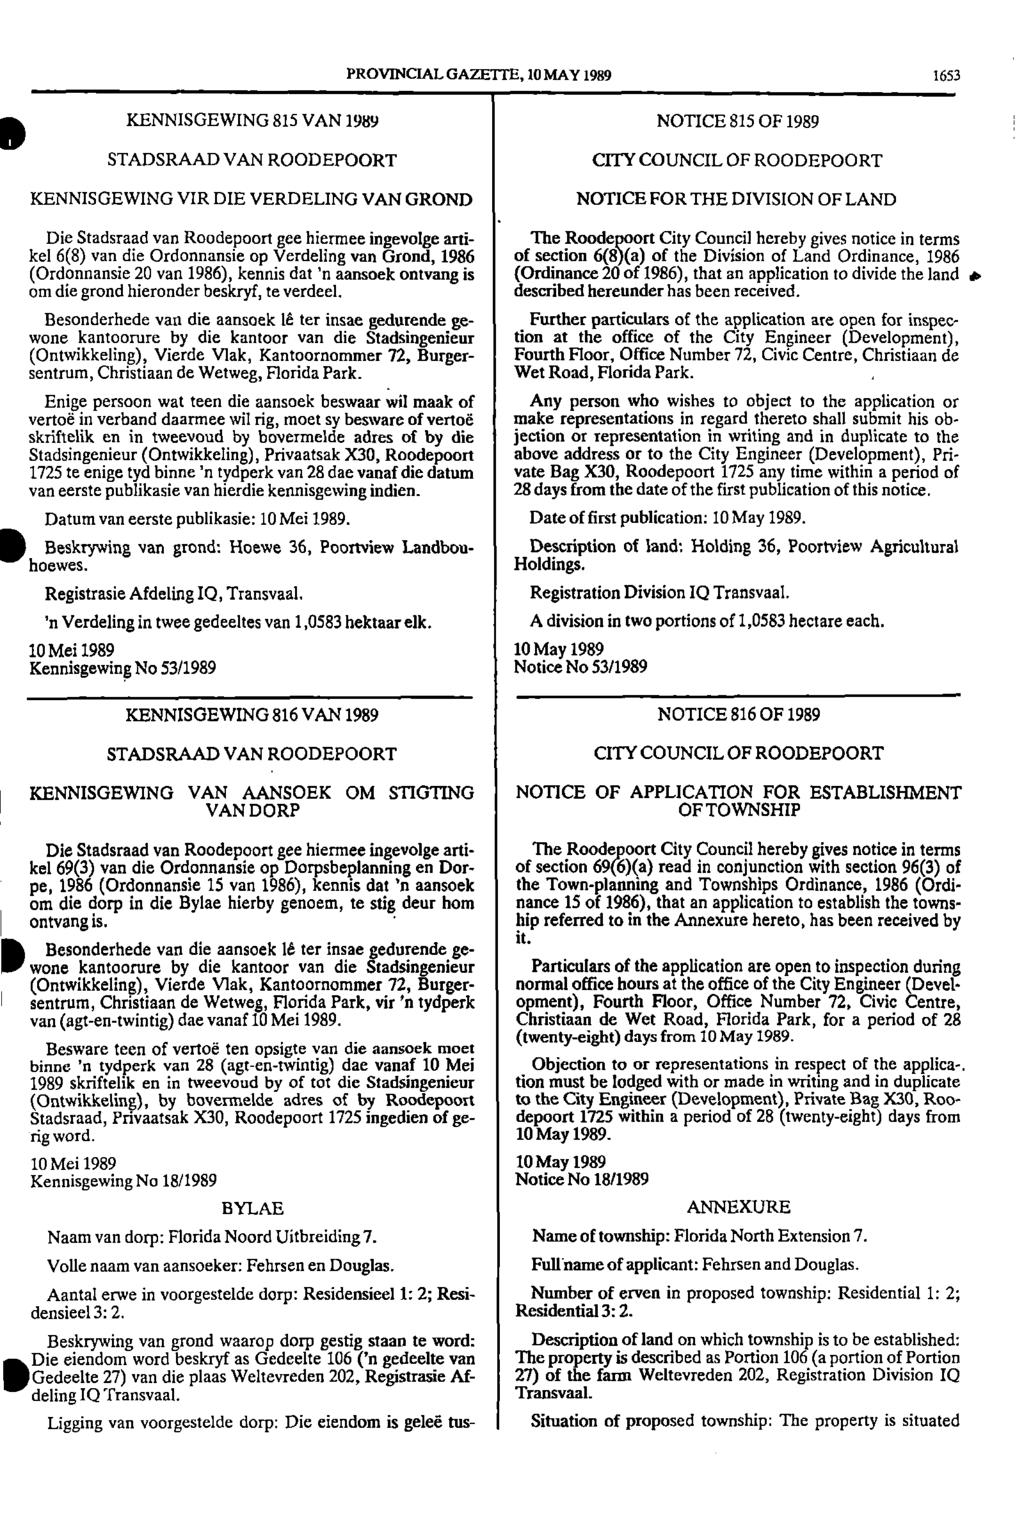 PROVINCIAL GAZETTE, 10 MAY 1989 1653 KENNISGEWING 815 VAN 1989 NOTICE 815 OF 1989 STADSRAAD VAN ROODEPOORT CITY COUNCIL OF ROODEPOORT KENNISGEWING VIR DIE VERDELING VAN GROND NOTICE FOR THE DIVISION